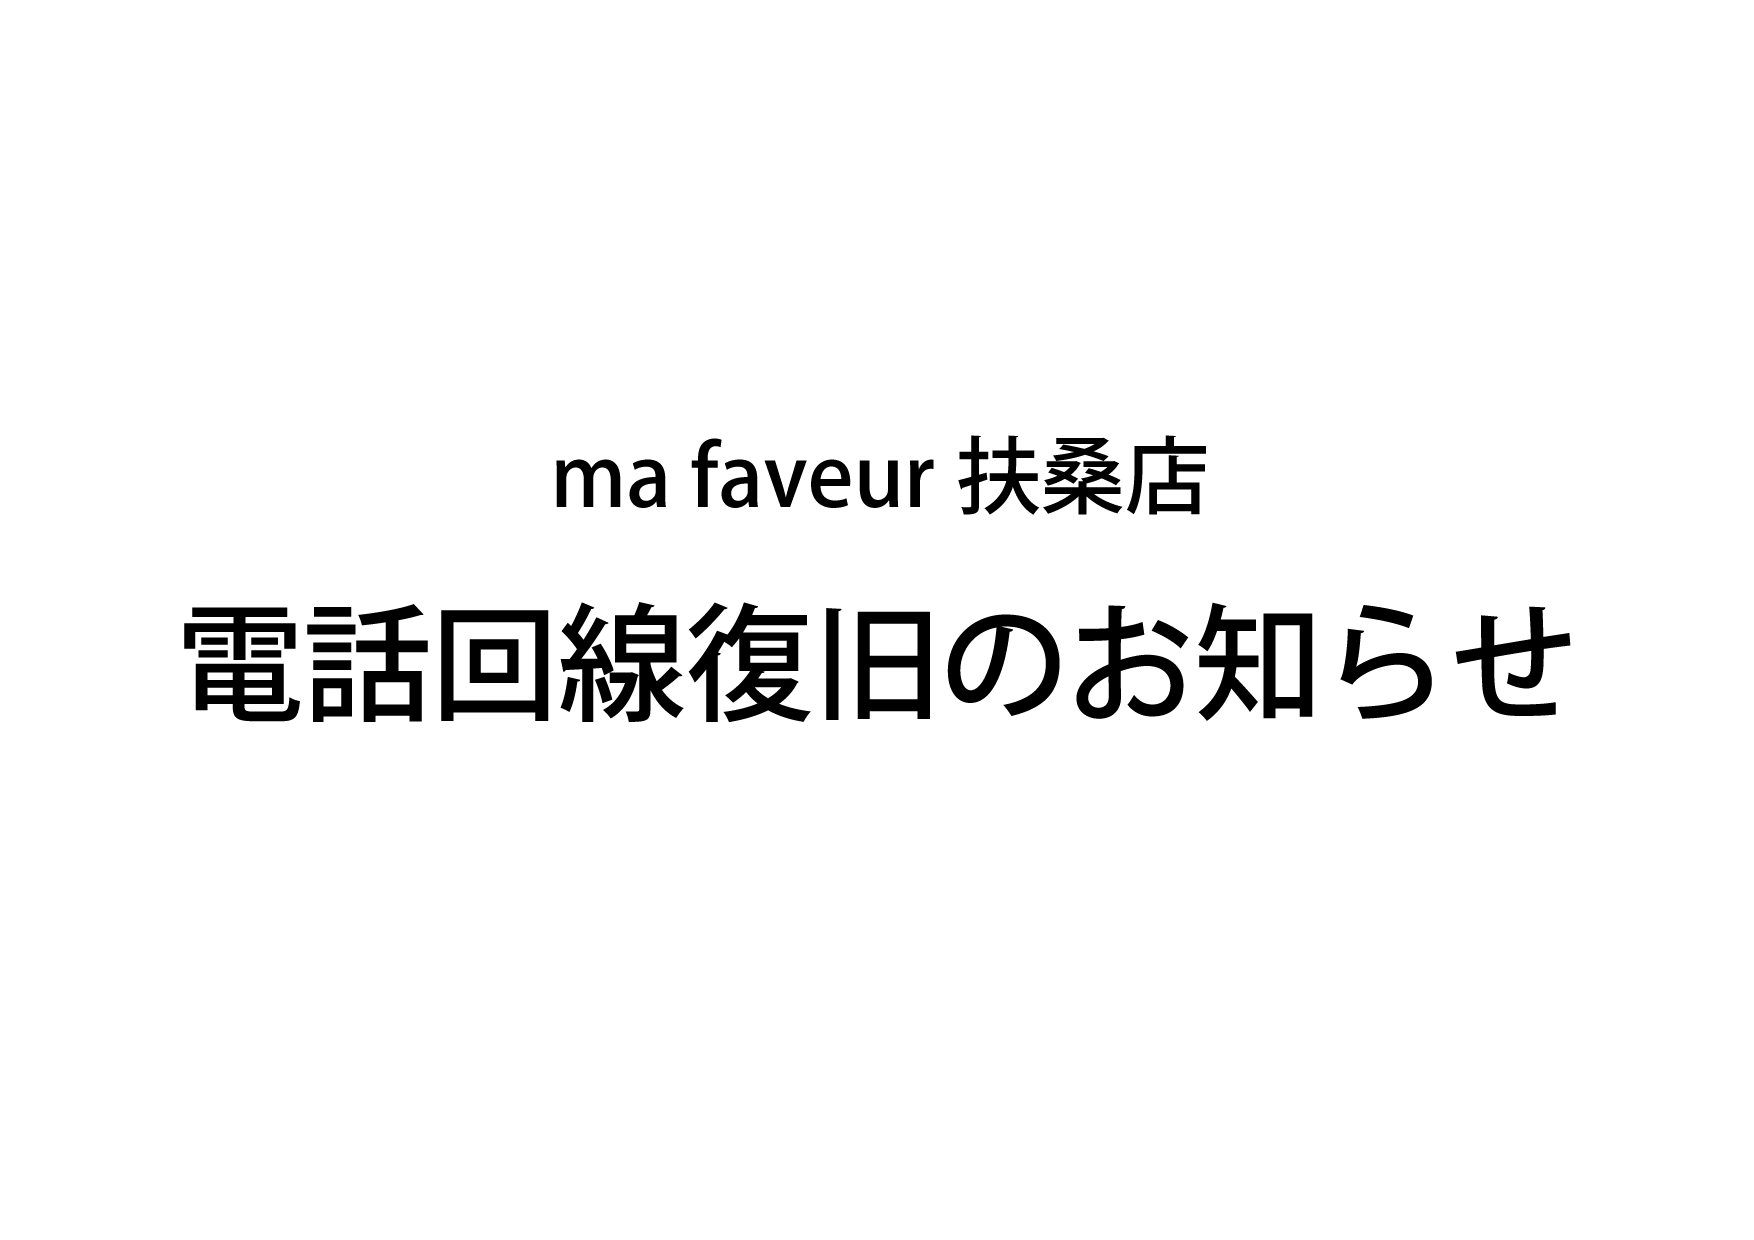 ma faveur扶桑店 電話回線復旧のお知らせ!!